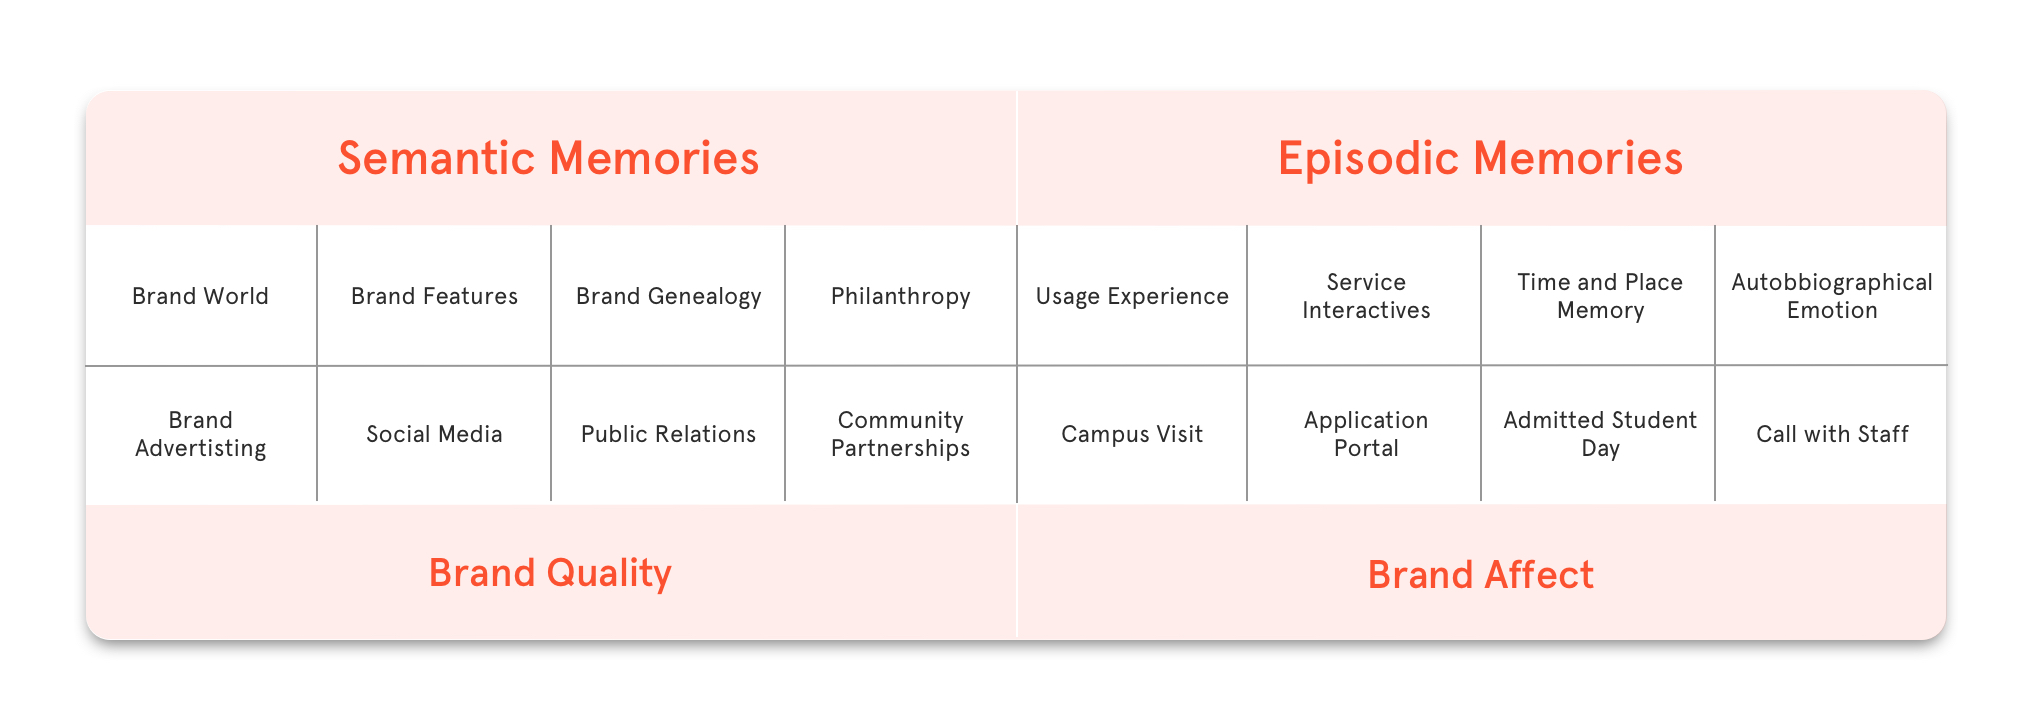 A chart with 8 columns and 2 rows that maps out how memories create brand experiences and recall for users.